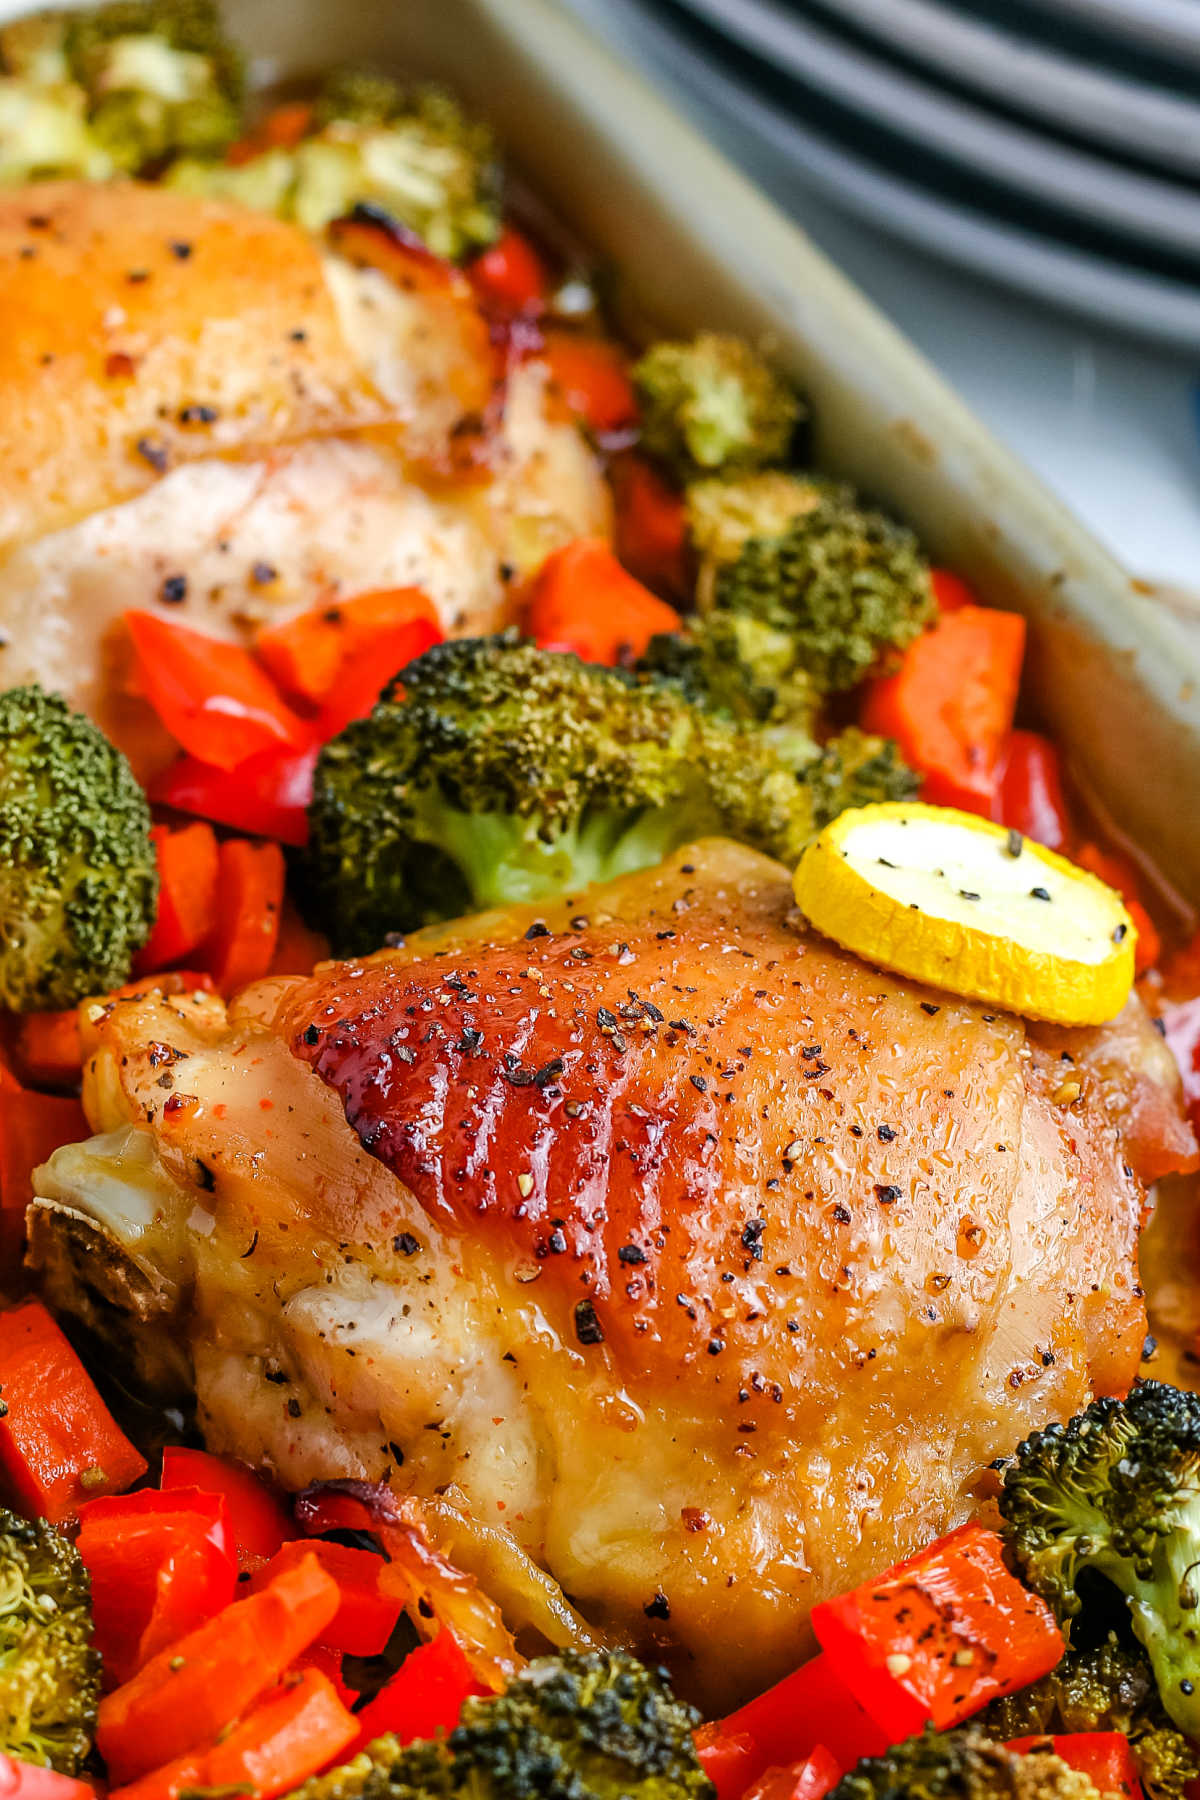 A close up picture of the finished Sheet Pan Chicken Thighs.